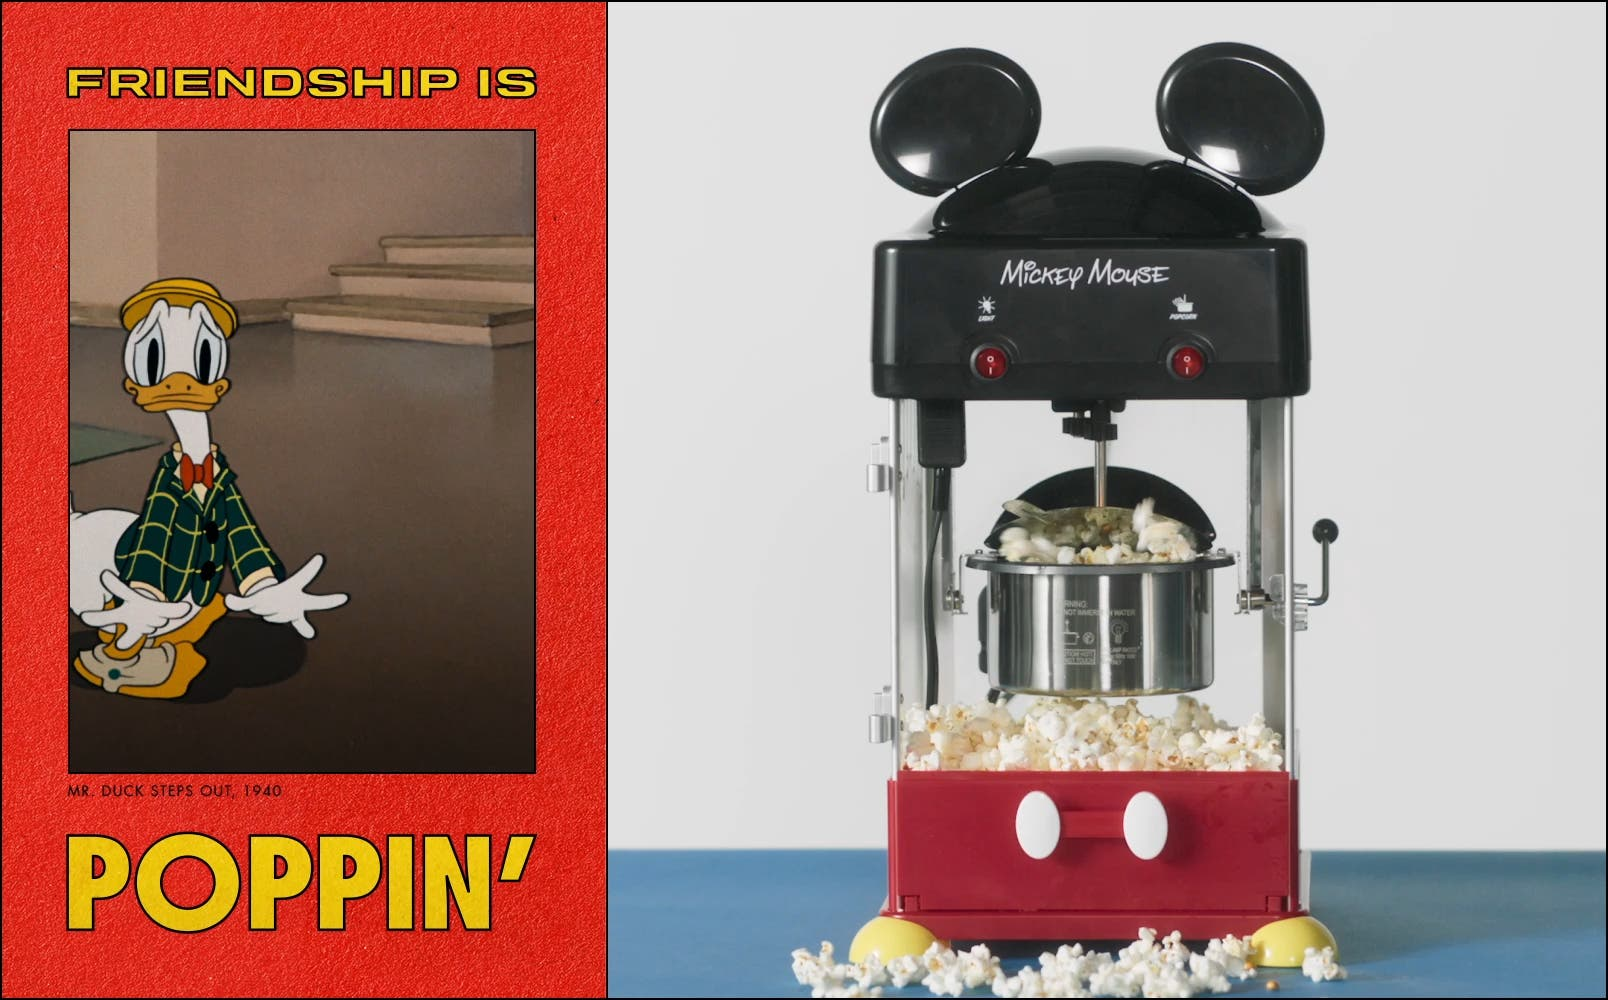 Video of Mickey Mouse popcorn maker; video of Donald Duck with popcorn.